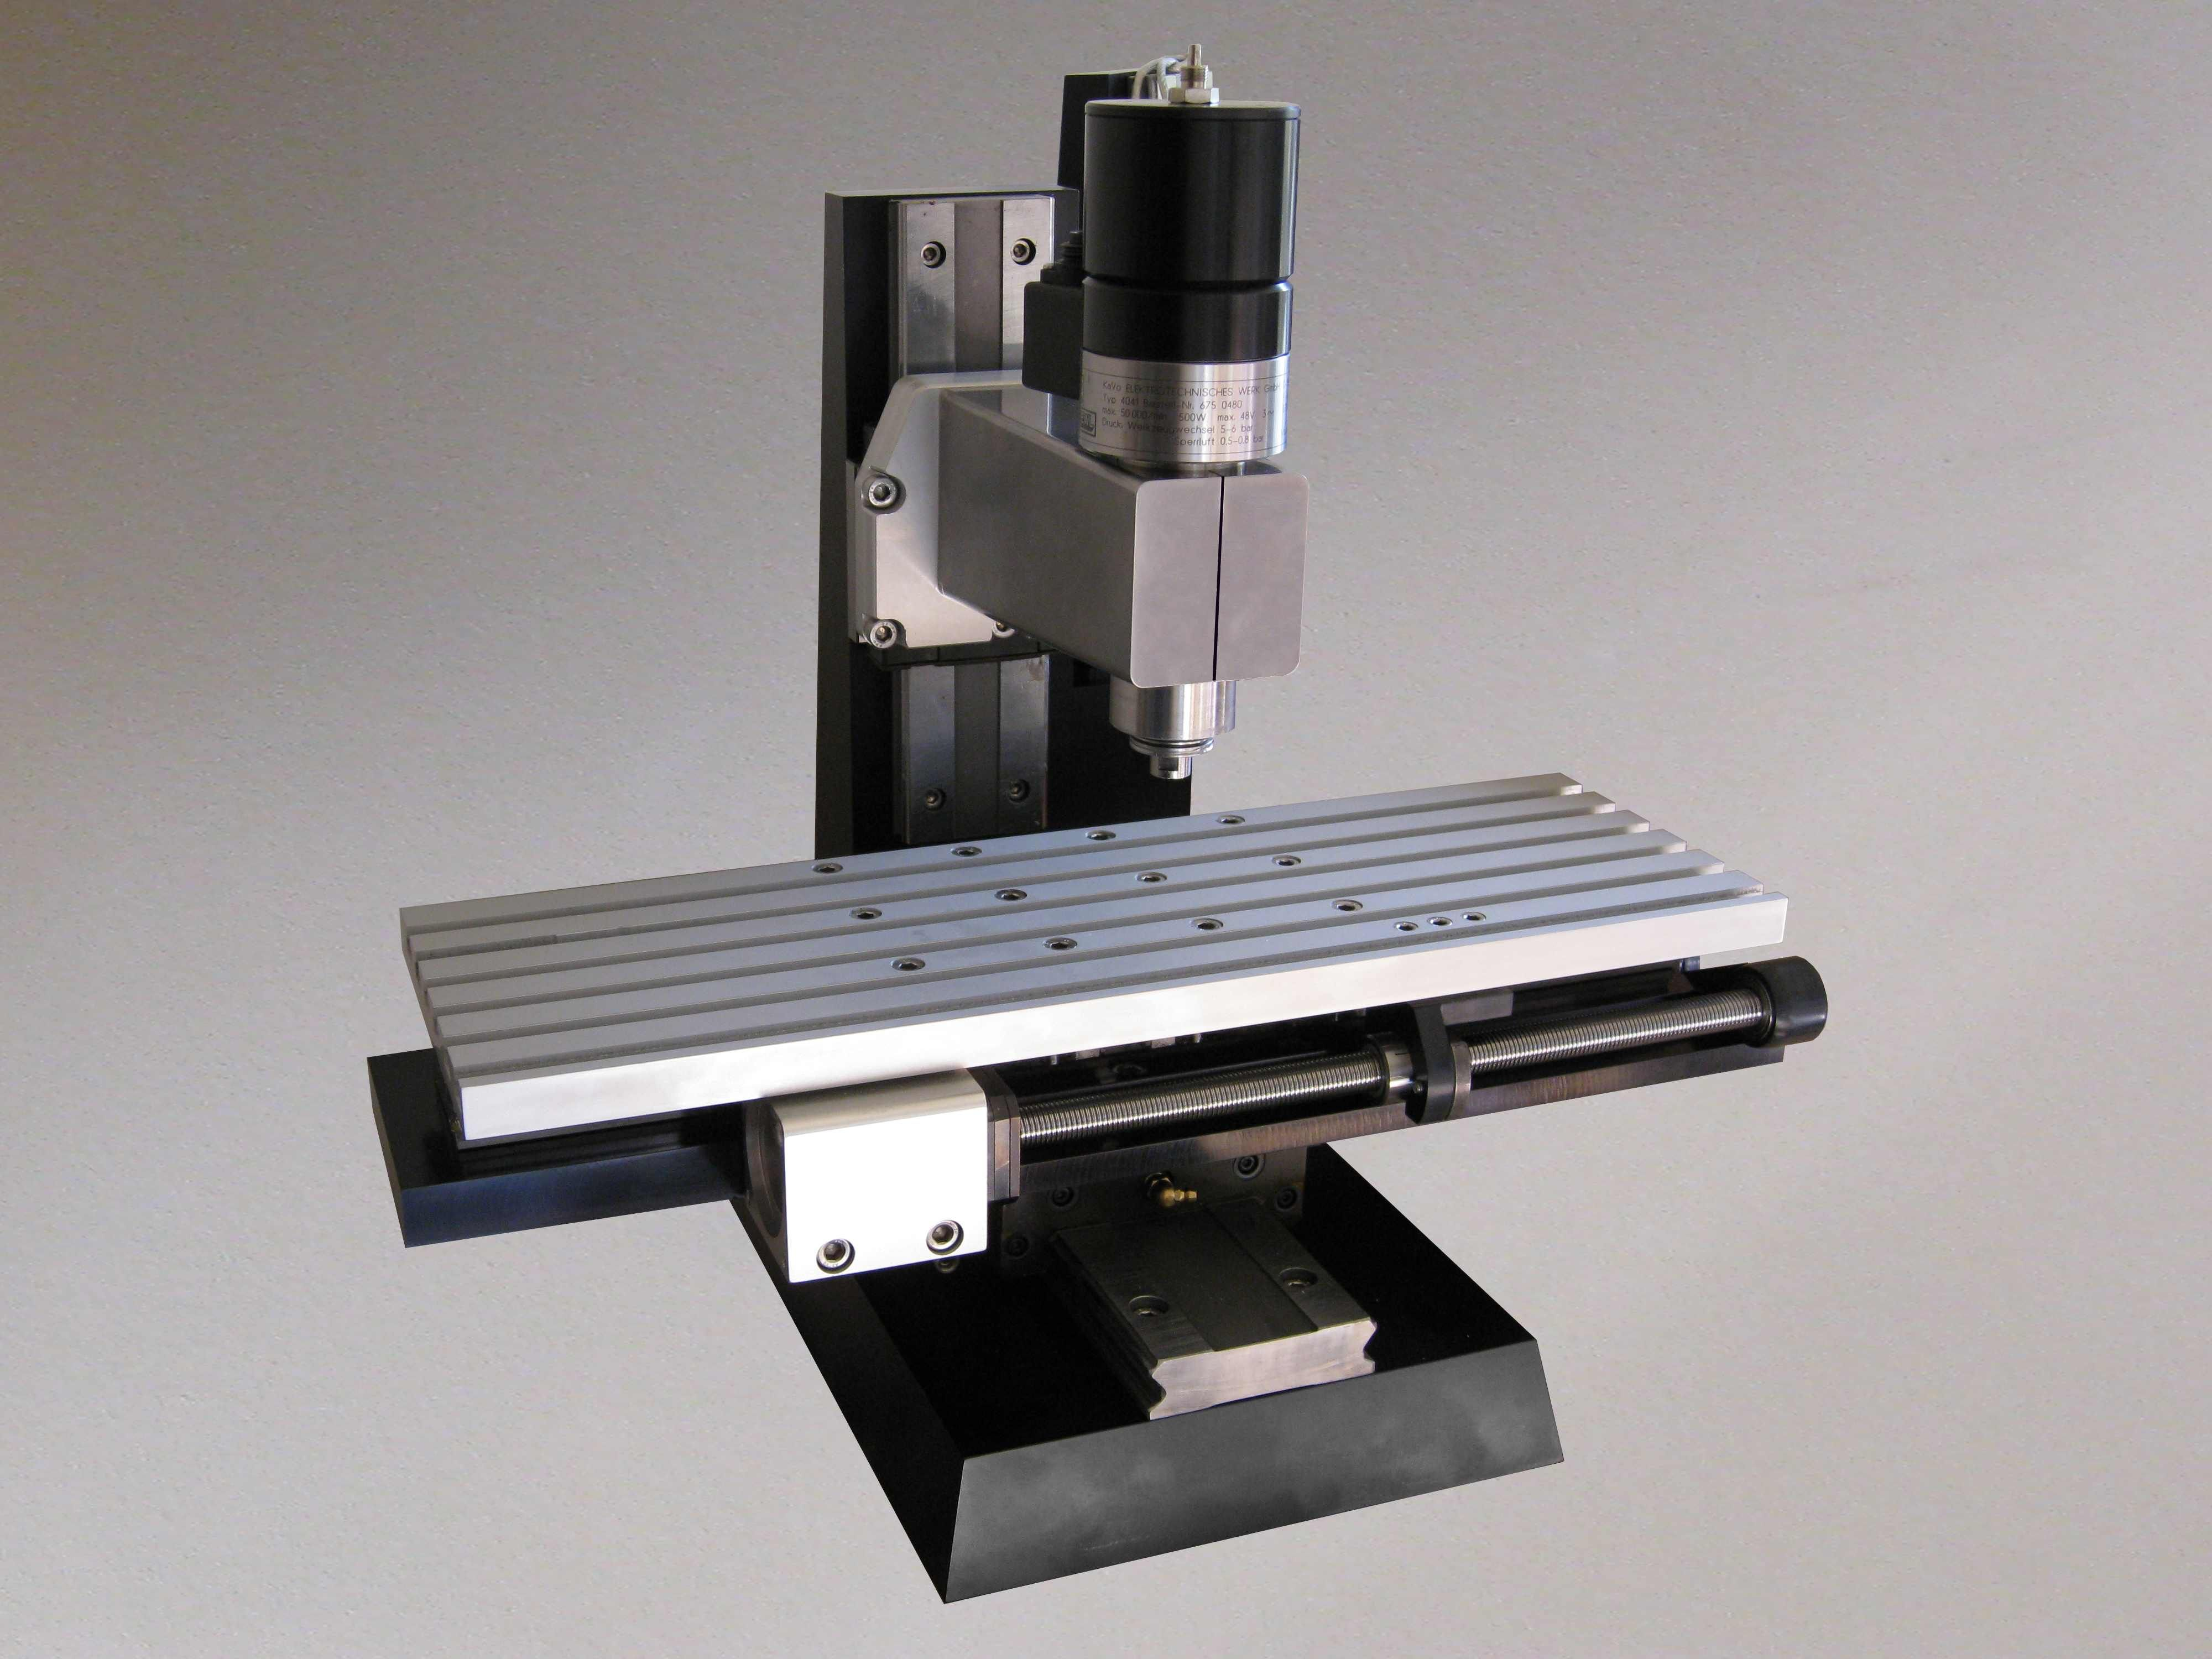 cnc mill. zealcnc : build your own cnc mill or lathe! cnc